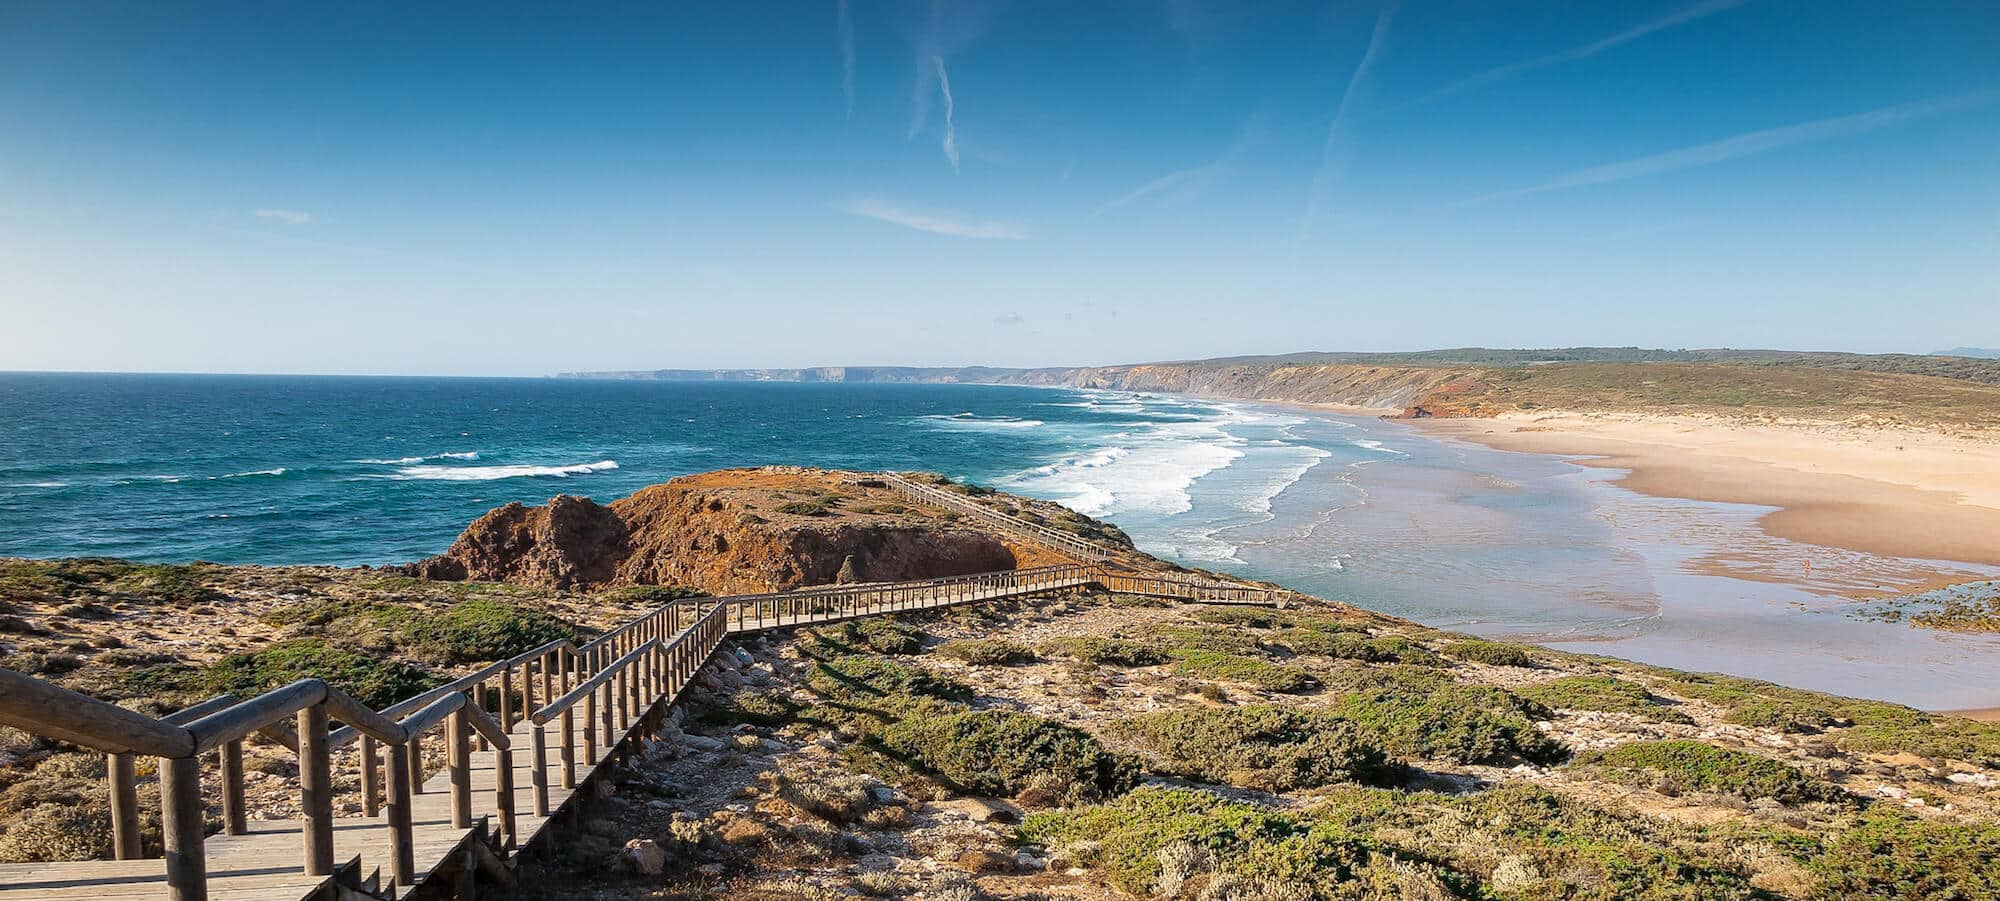 Rota Vicentina self-guided walking holidays, winter walking holidays in Europe